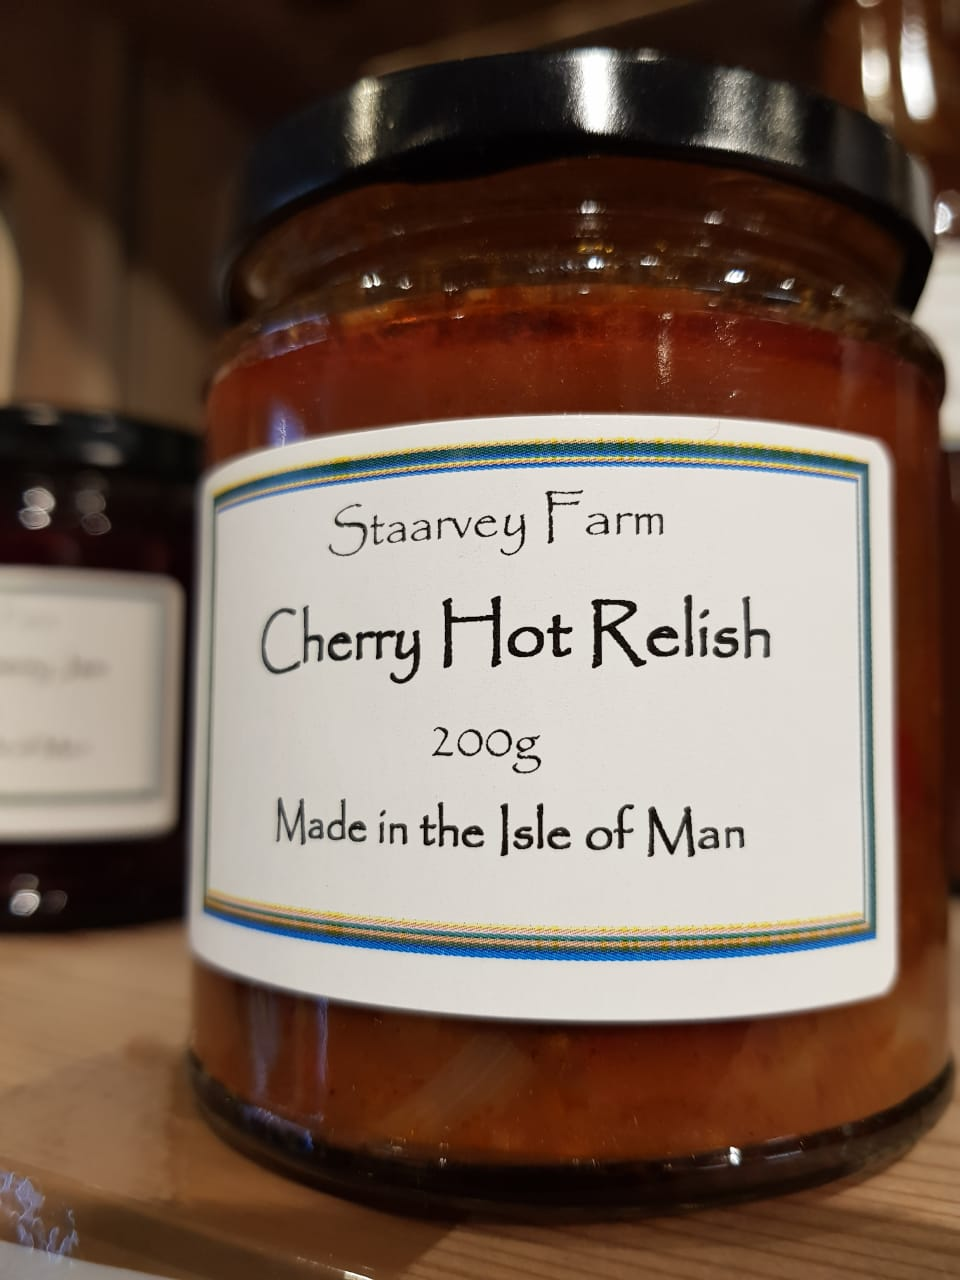 Staarvey Farm Cherry Hot Relish